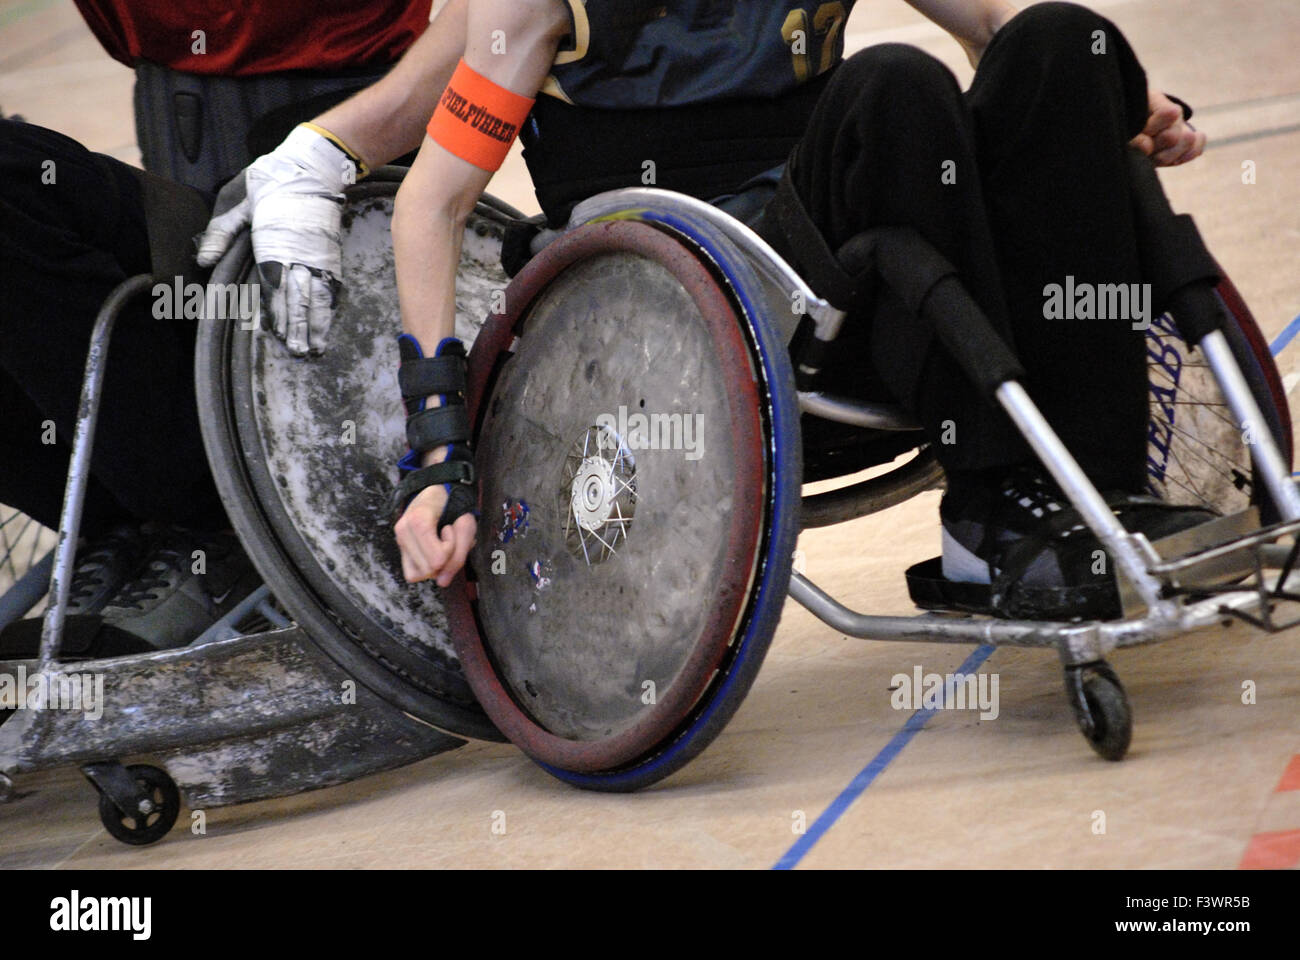 rugby with wheelchair - Stock Image